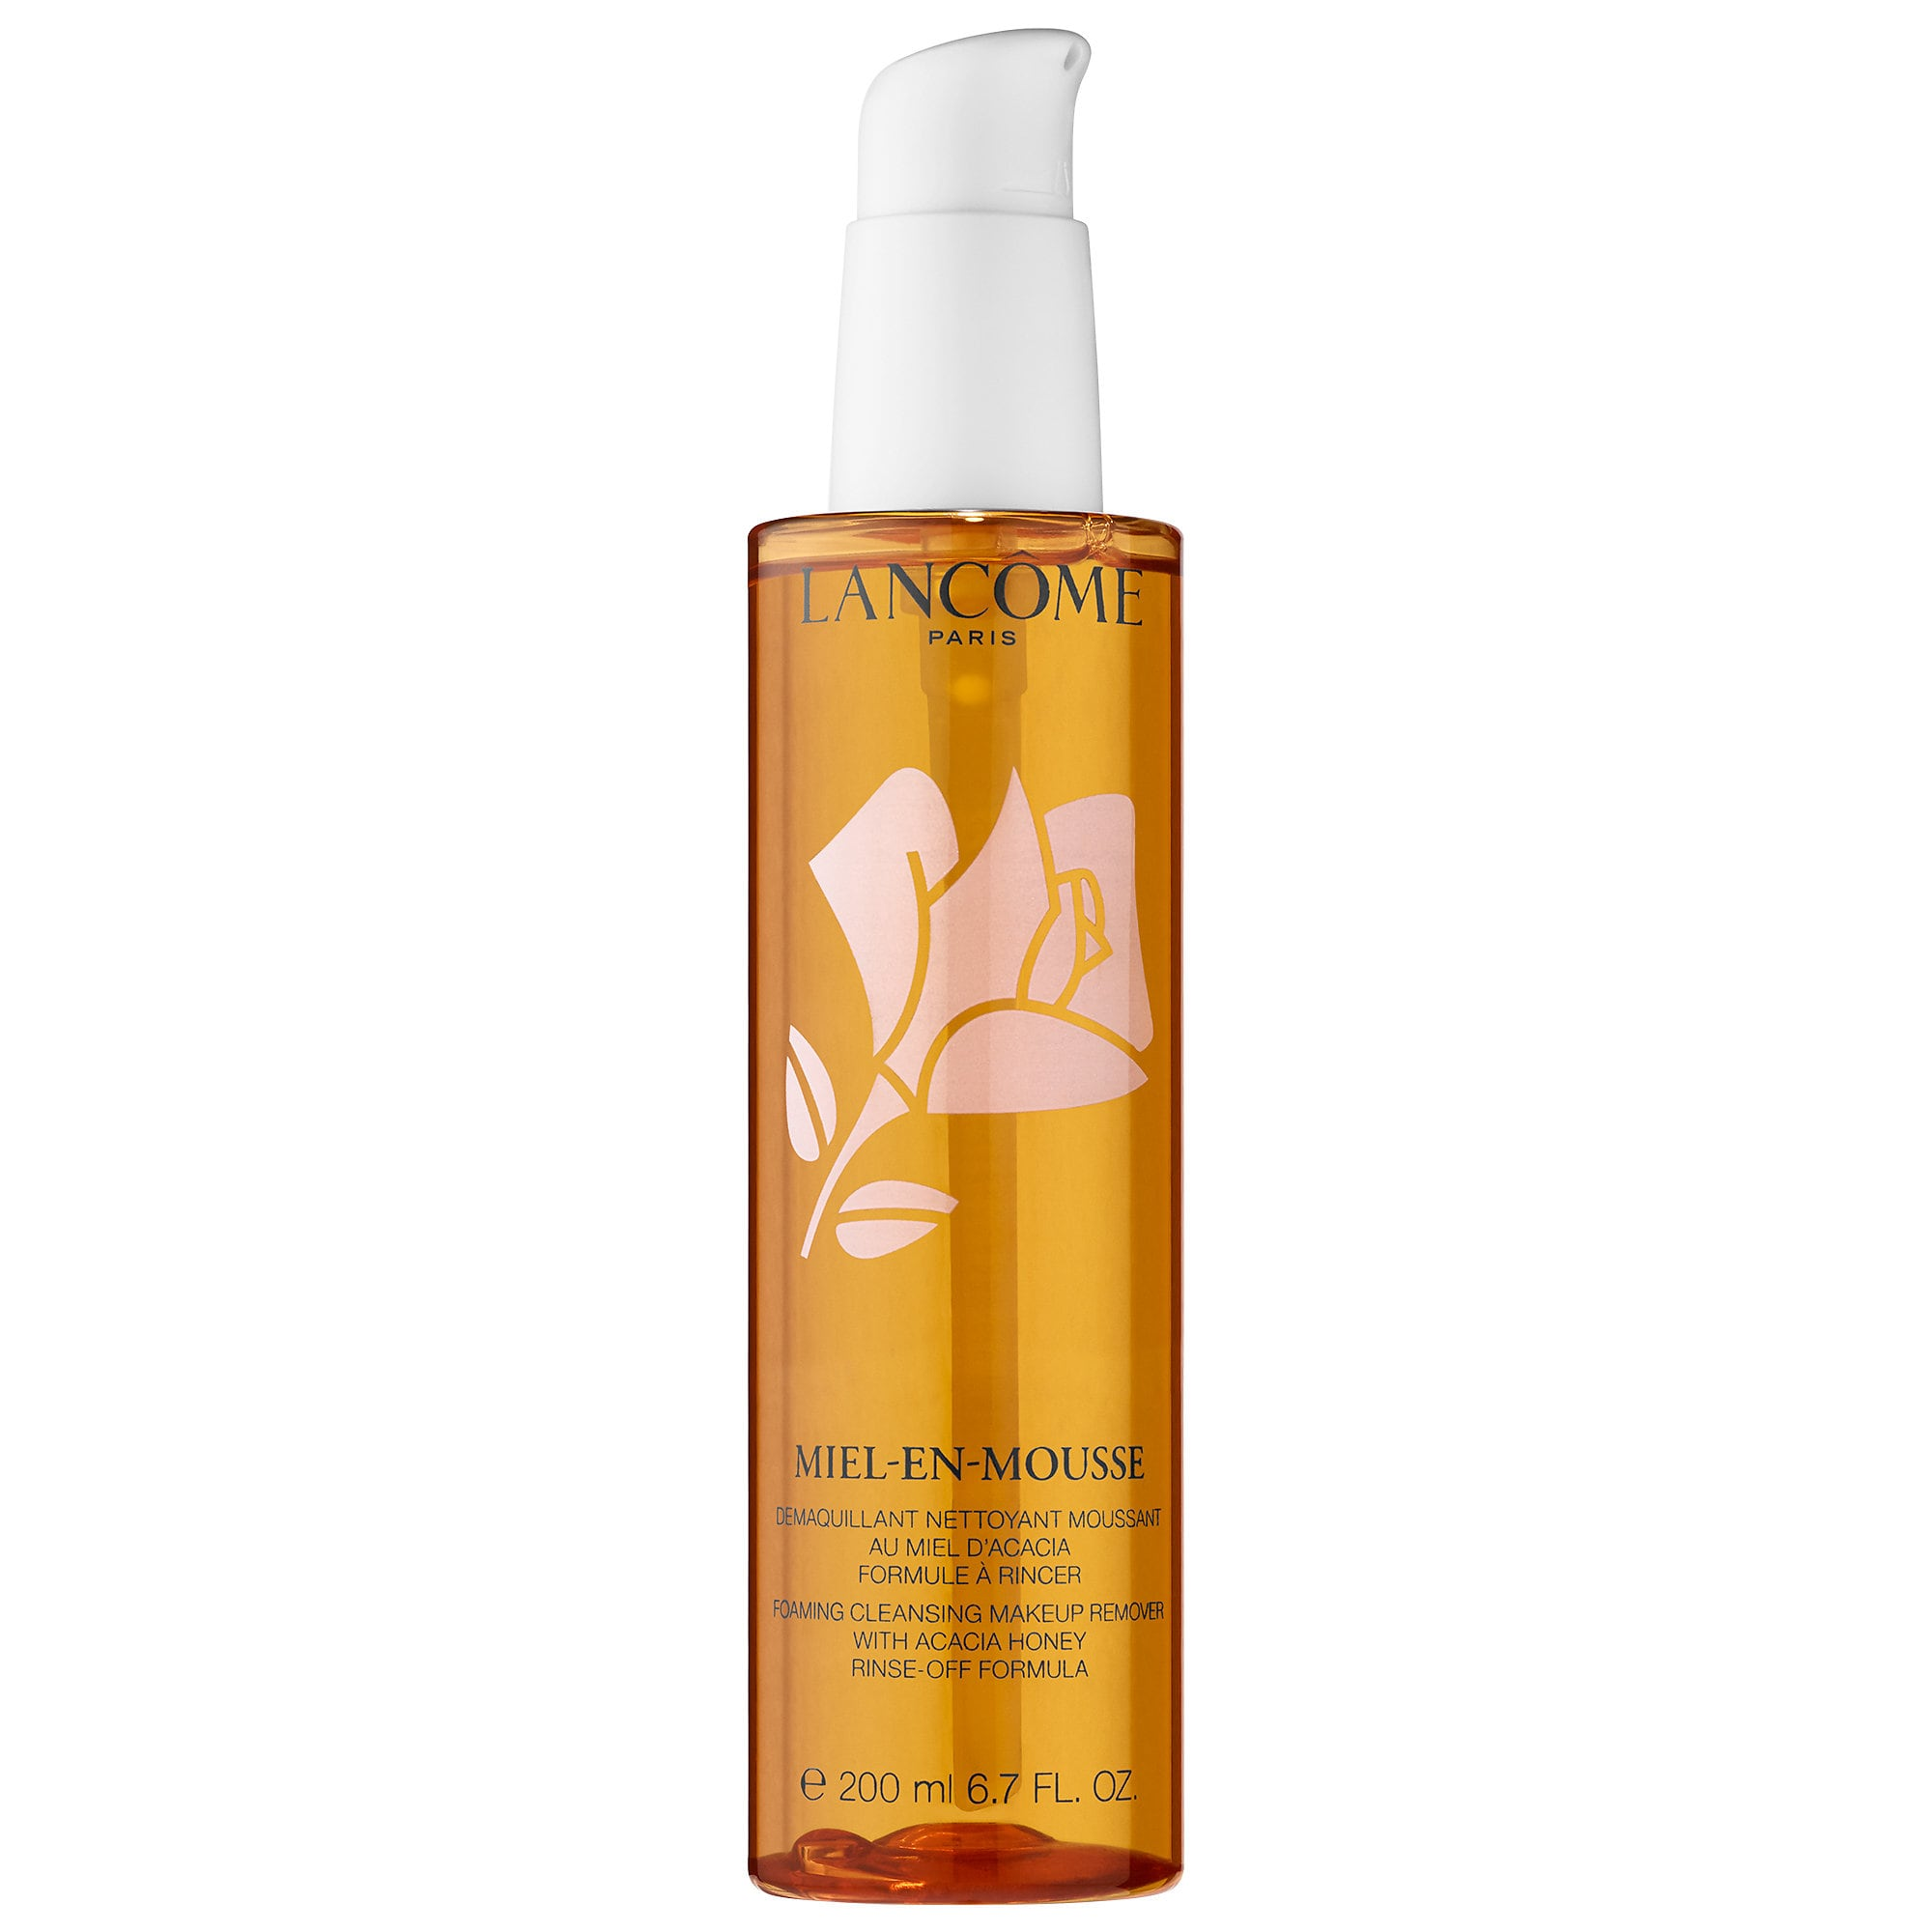 Miel-En-Mousse Foaming Cleansing Makeup Remover with Acacia Honey